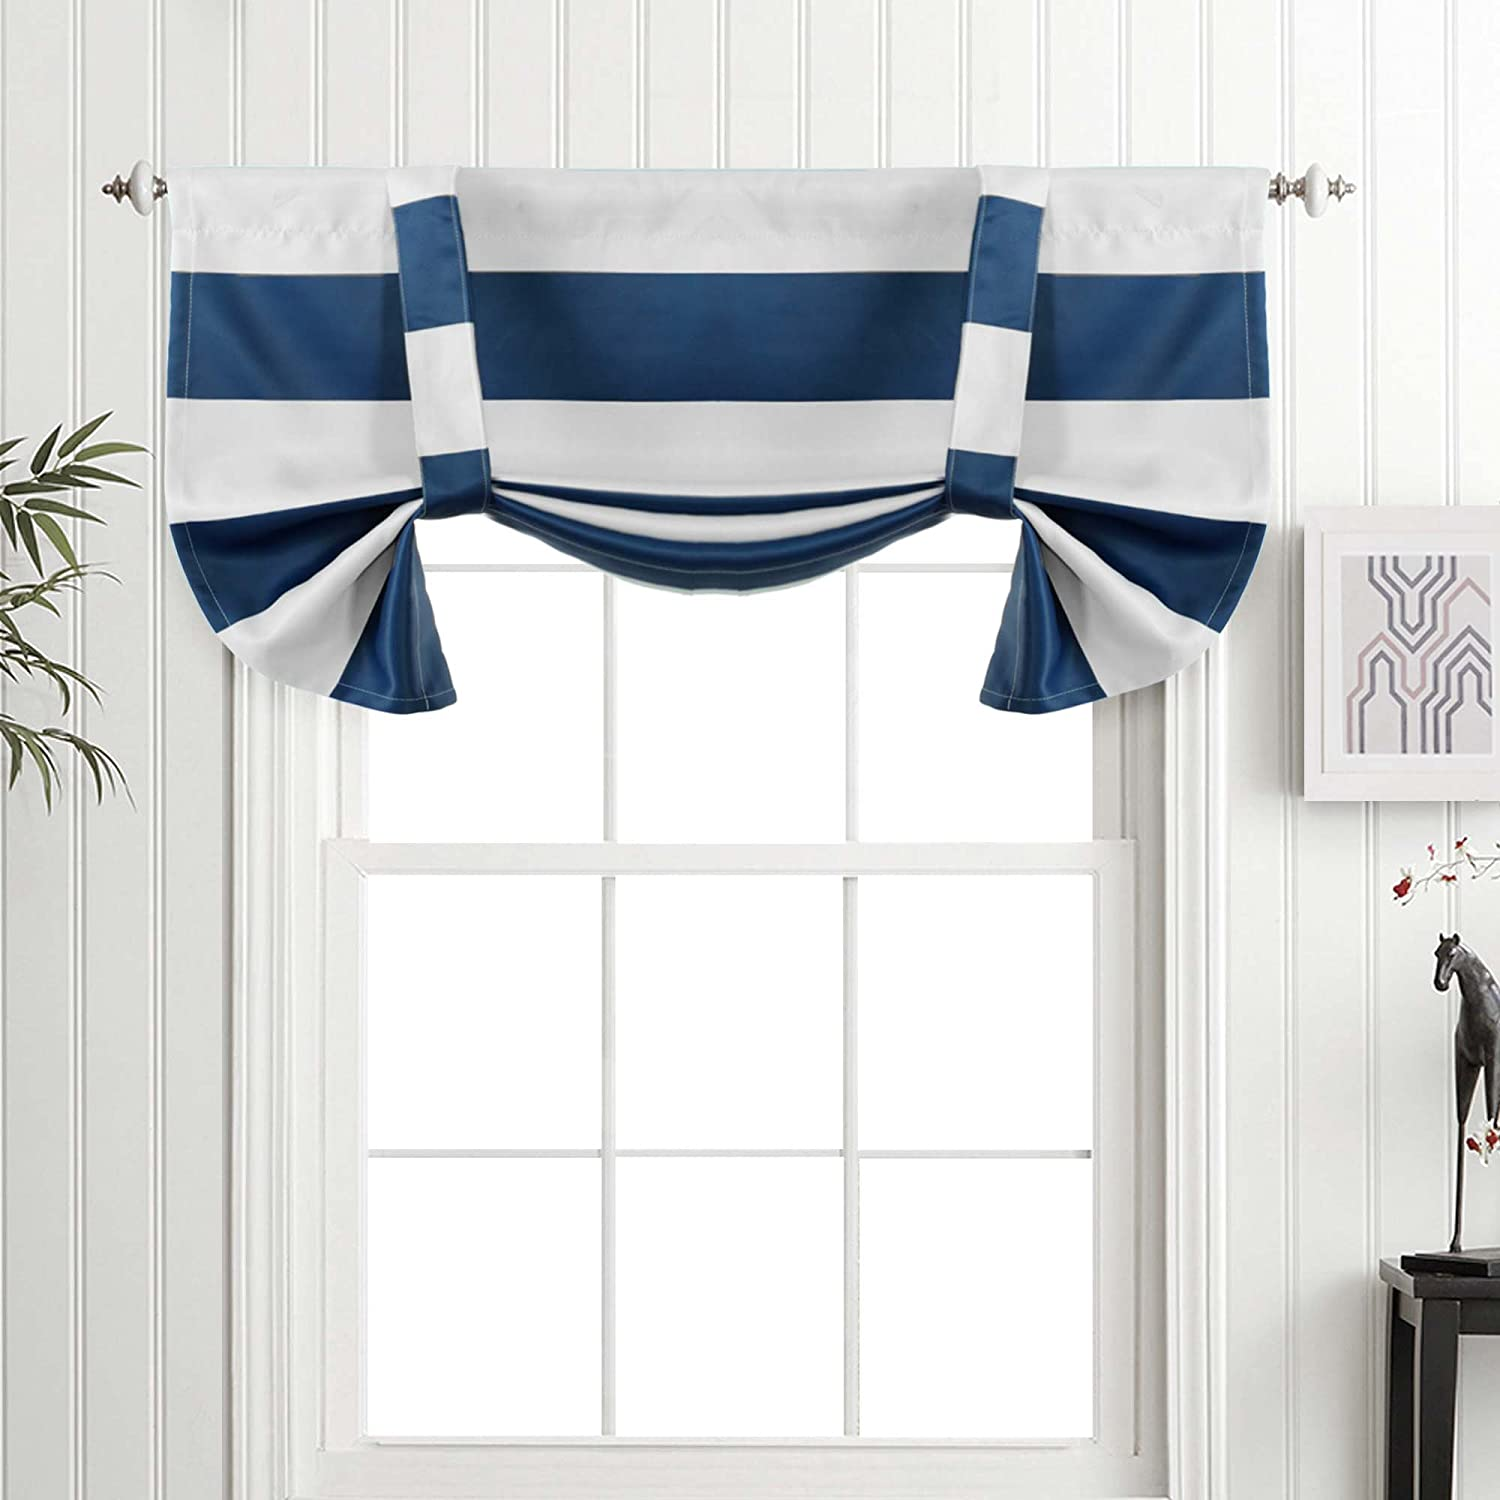 Turquoize Valances for Window Kitchen Valances Small Window Blackout  Curtains for Bedroom 52x24 Inch 1 Panels Strip-Navy